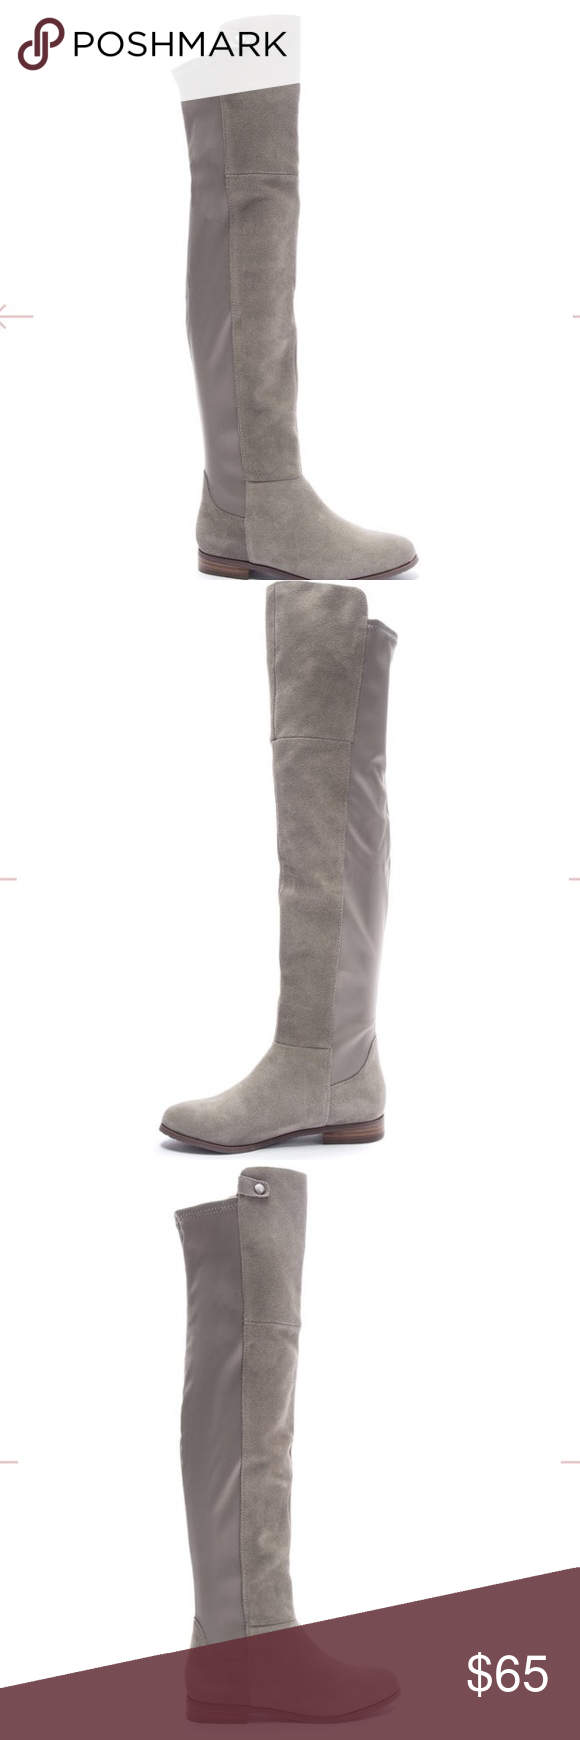 7396d5e61e8 Chinese Laundry Robin Boots New in box. Never worn Chinese Laundry Shoes  Over the Knee